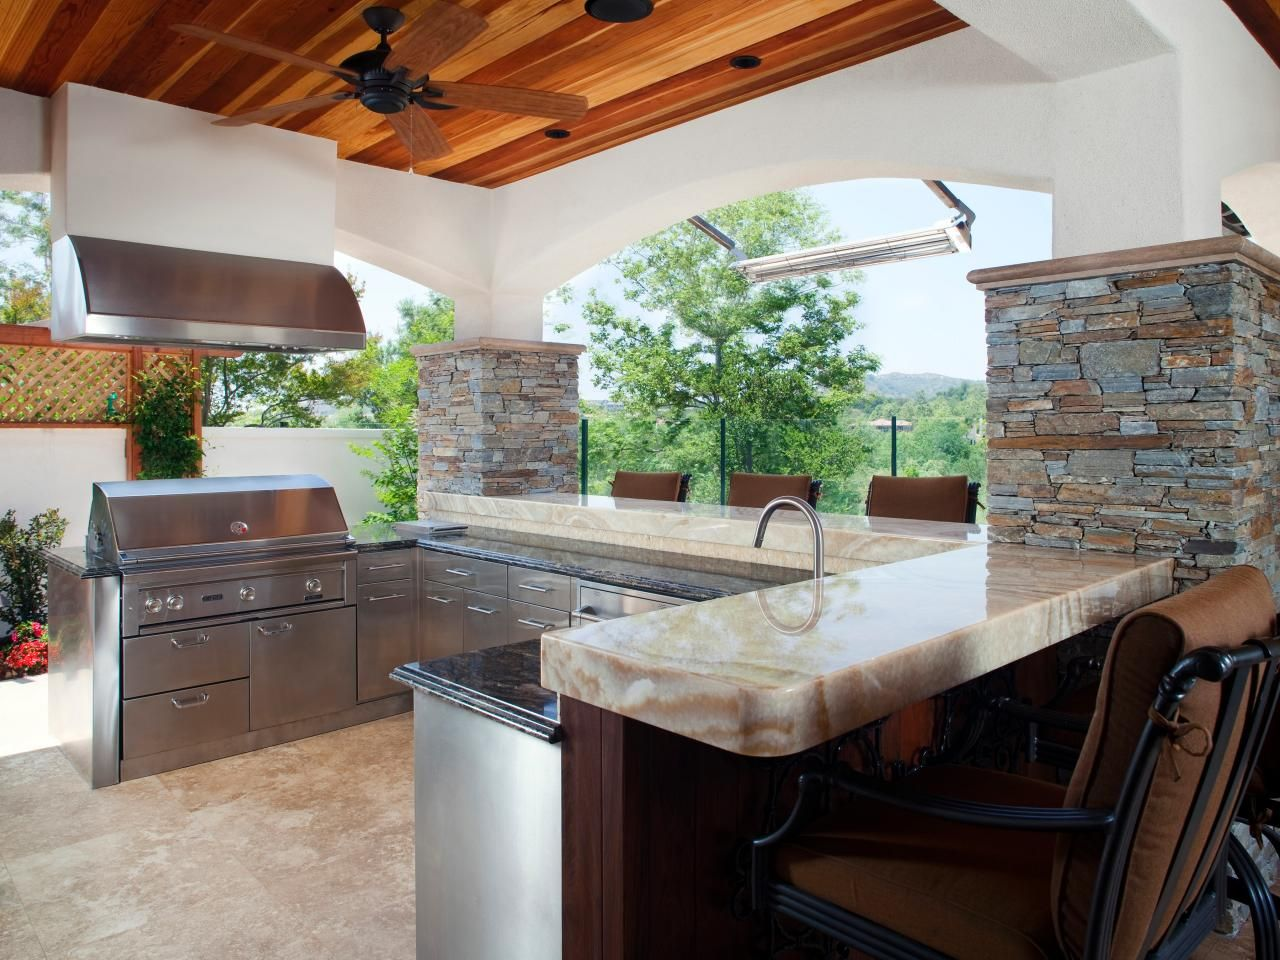 Pictures Of Outdoor Kitchens Gas Grills Cook Centers Islands Captivating Outdoor Kitchen Pictures Design Ideas Inspiration